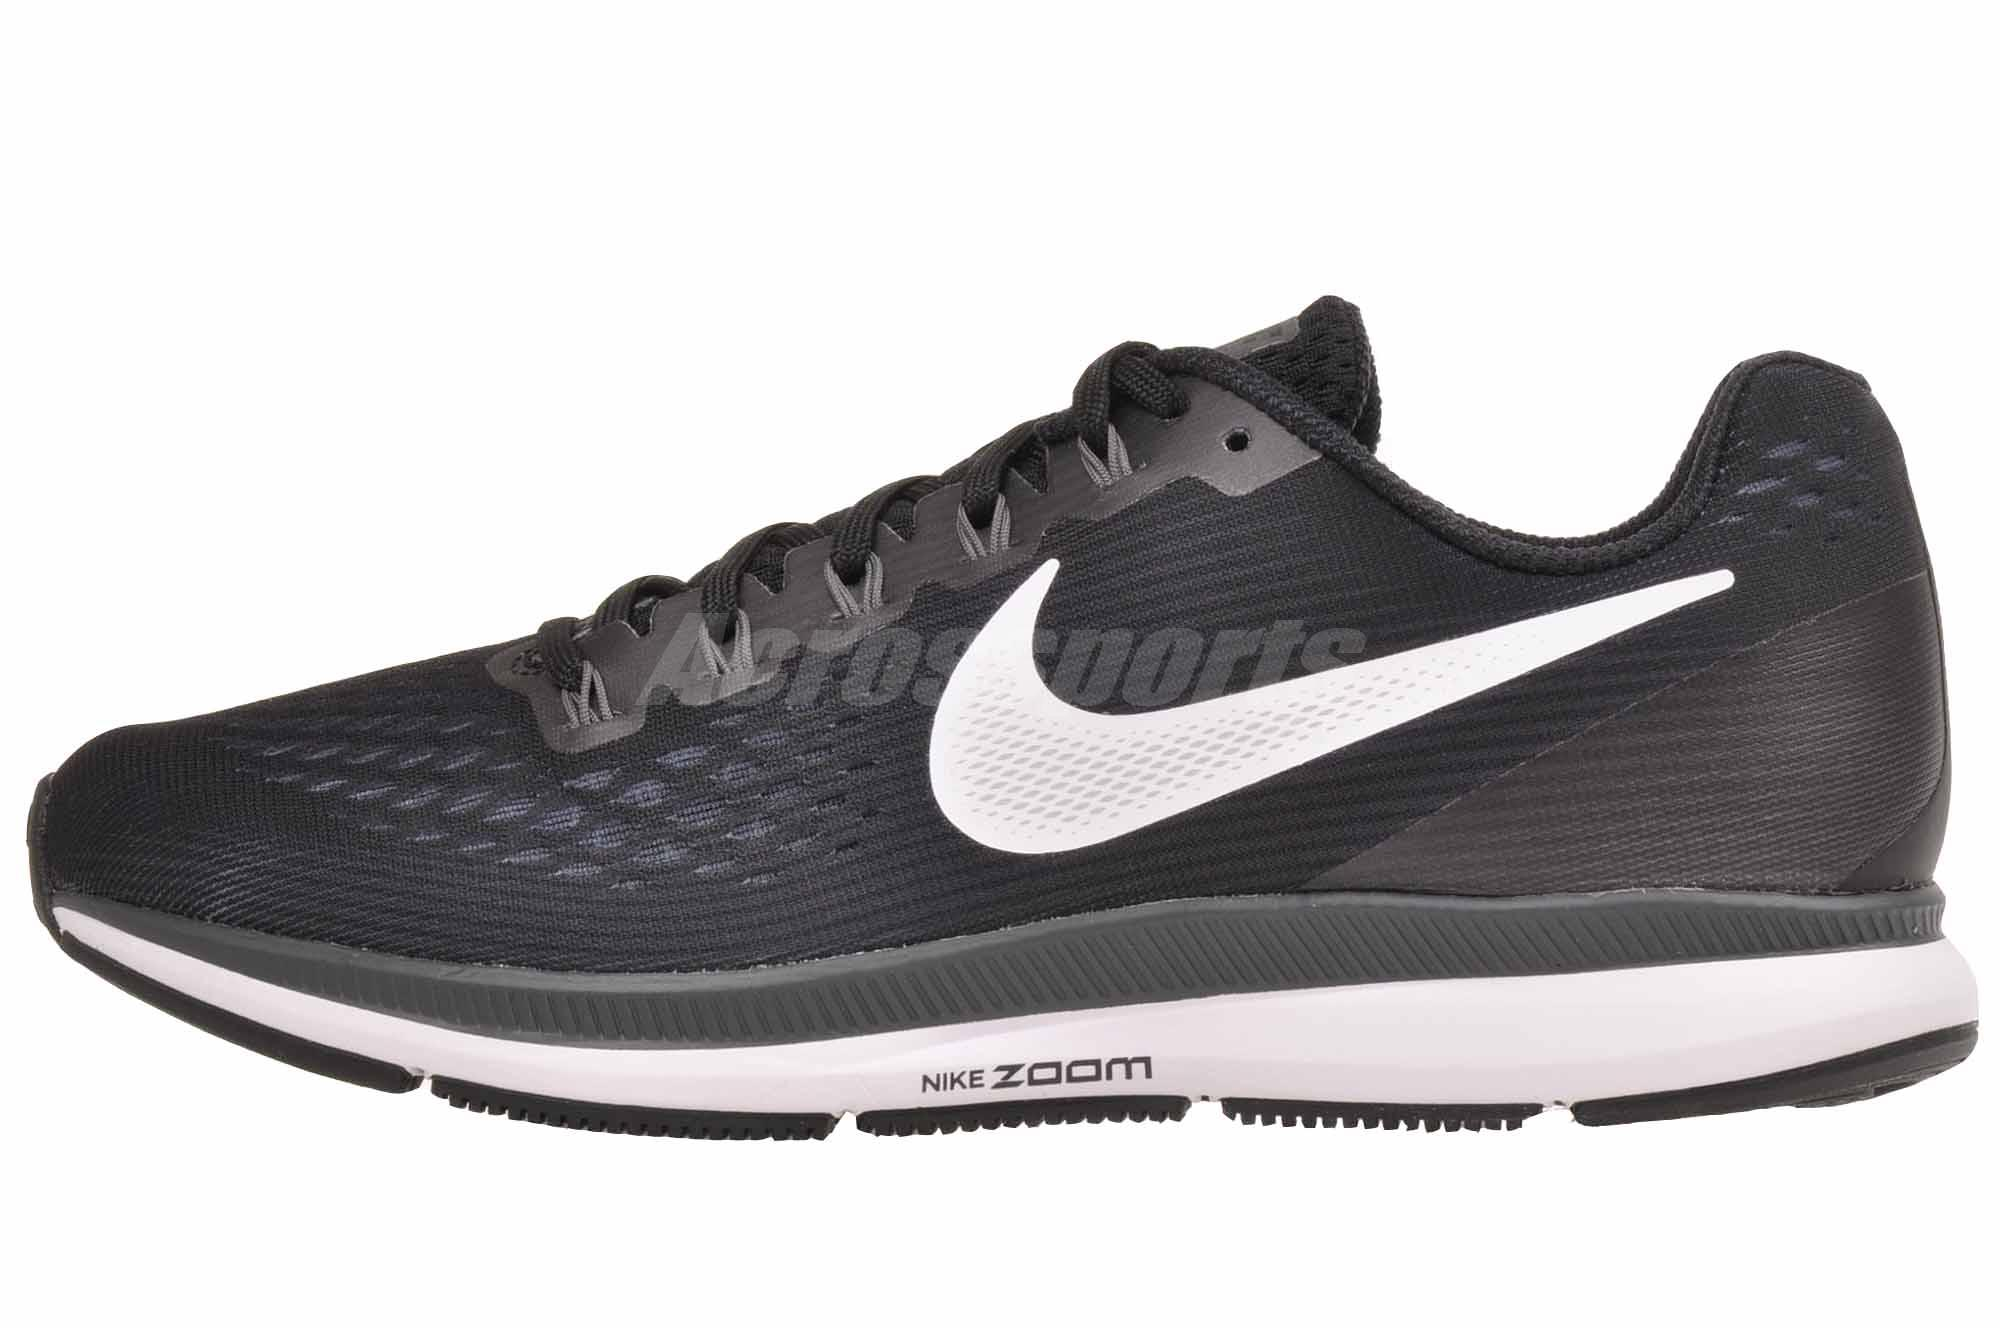 Details about Nike W Air Zoom Pegasus 34 Running Womens Shoes Black (Wide) 880561 001